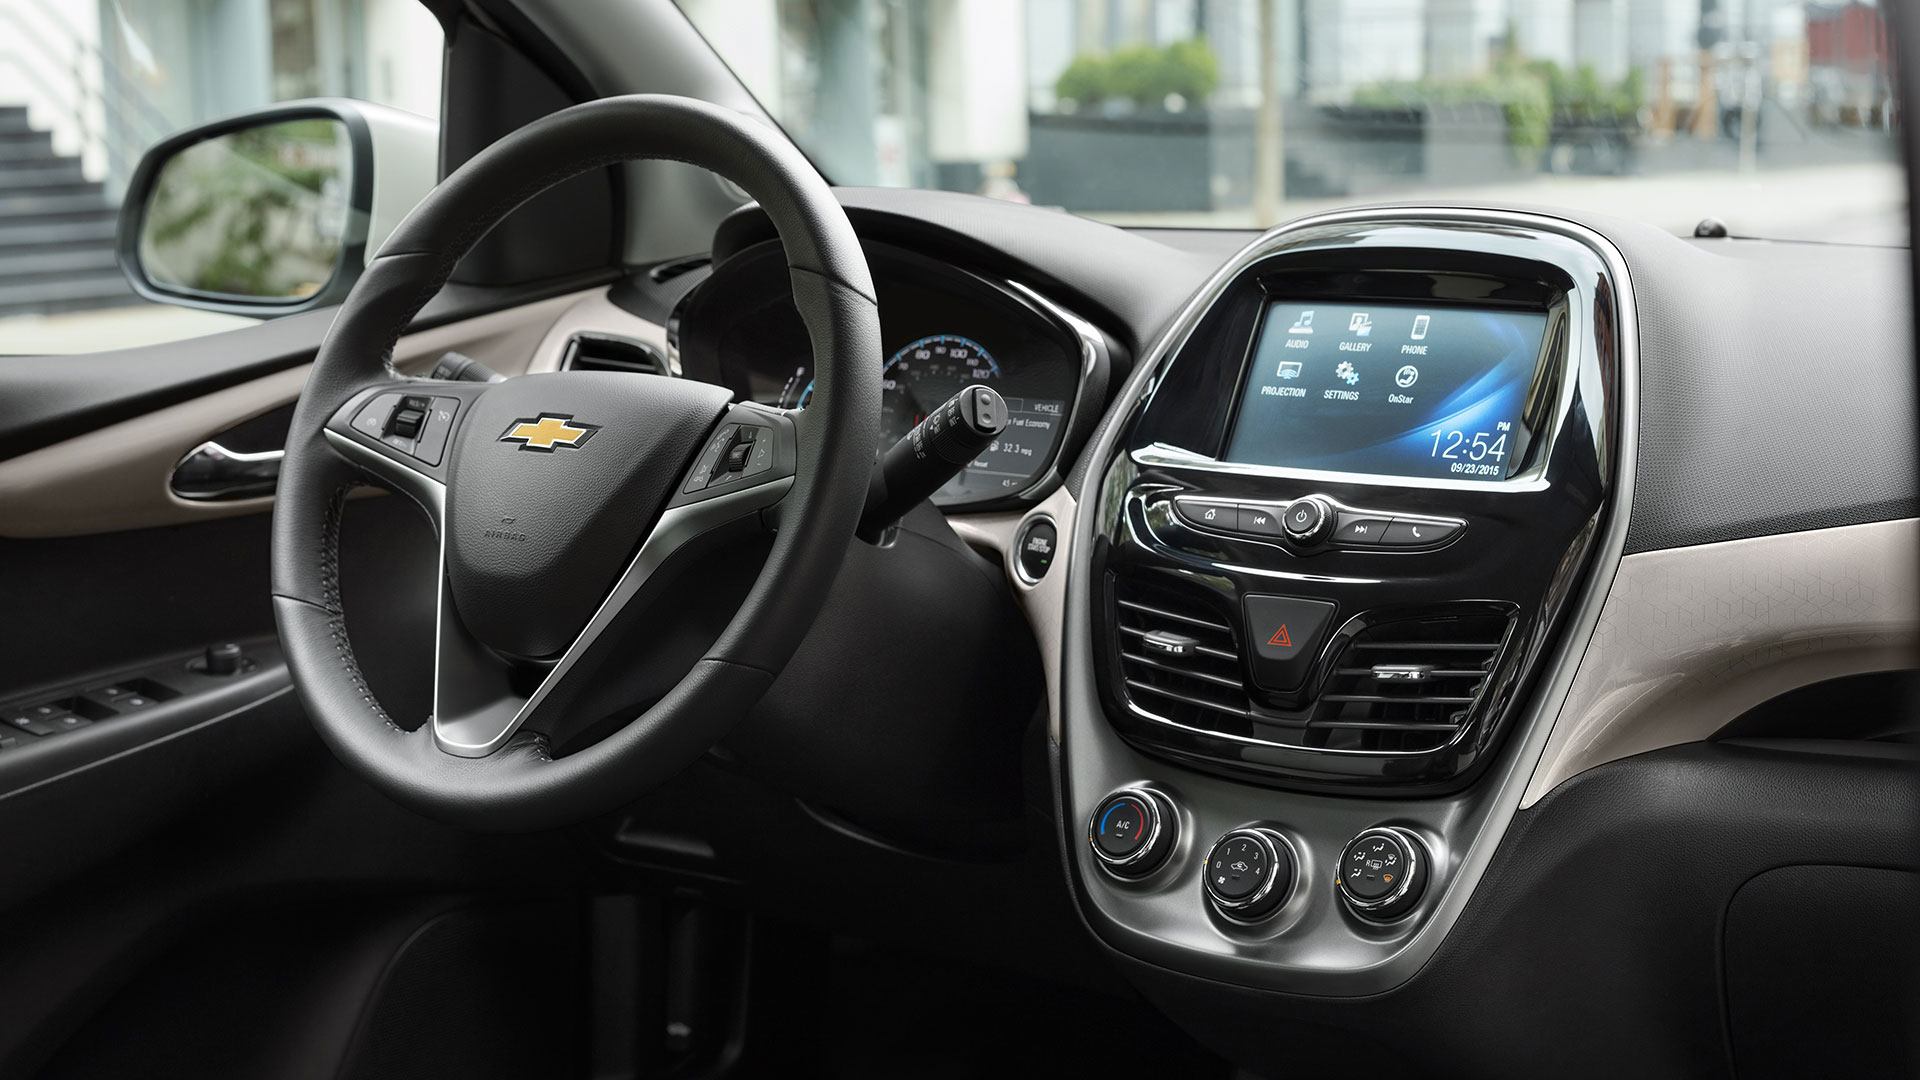 2017 Chevrolet Spark Seating Interior